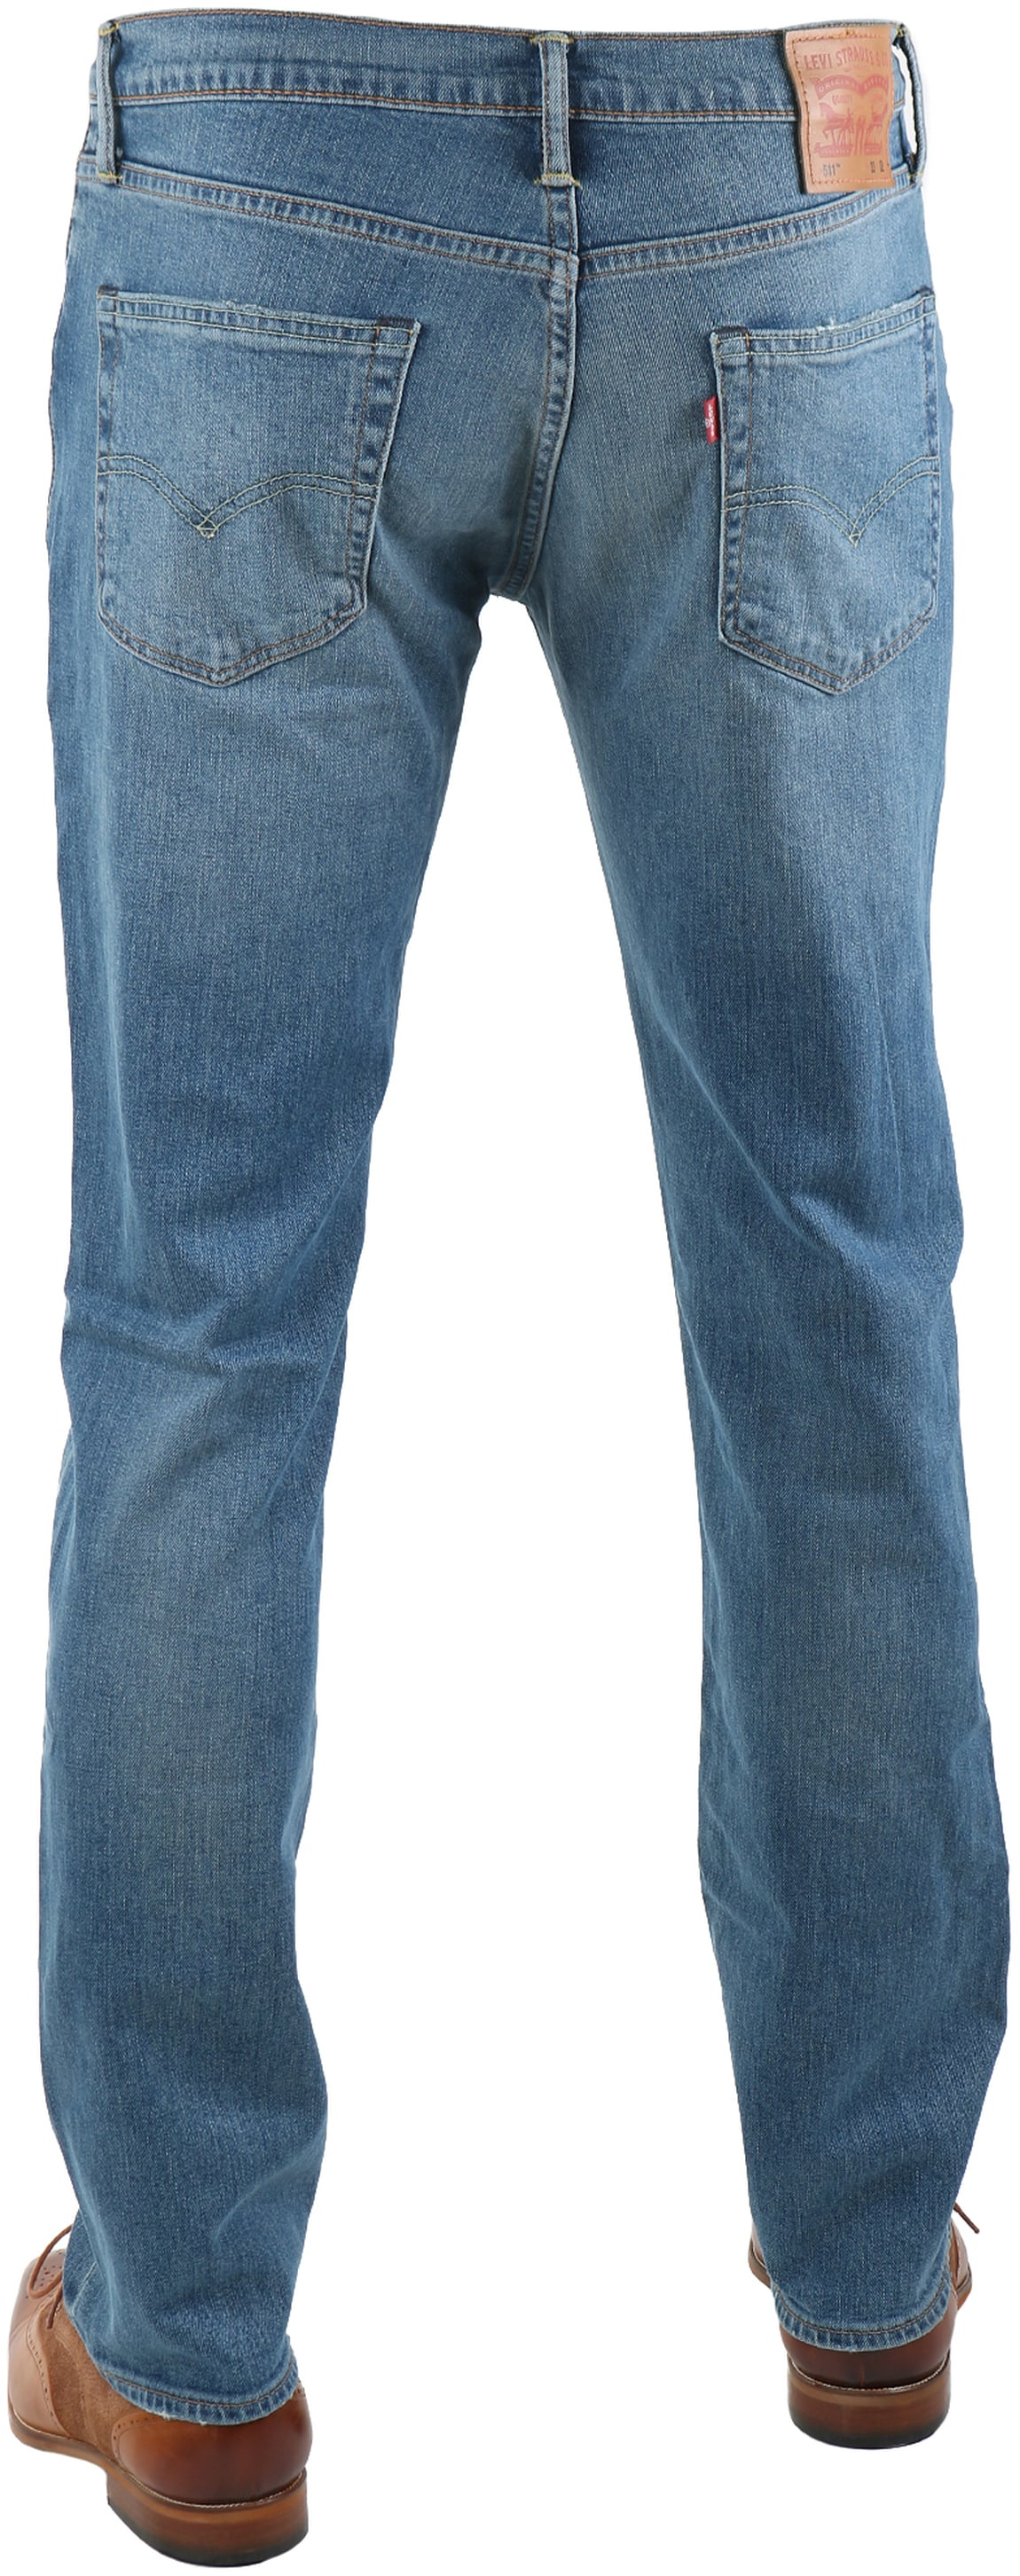 Levi's 511 Jeans Slim Fit Light Denim 1096 foto 1